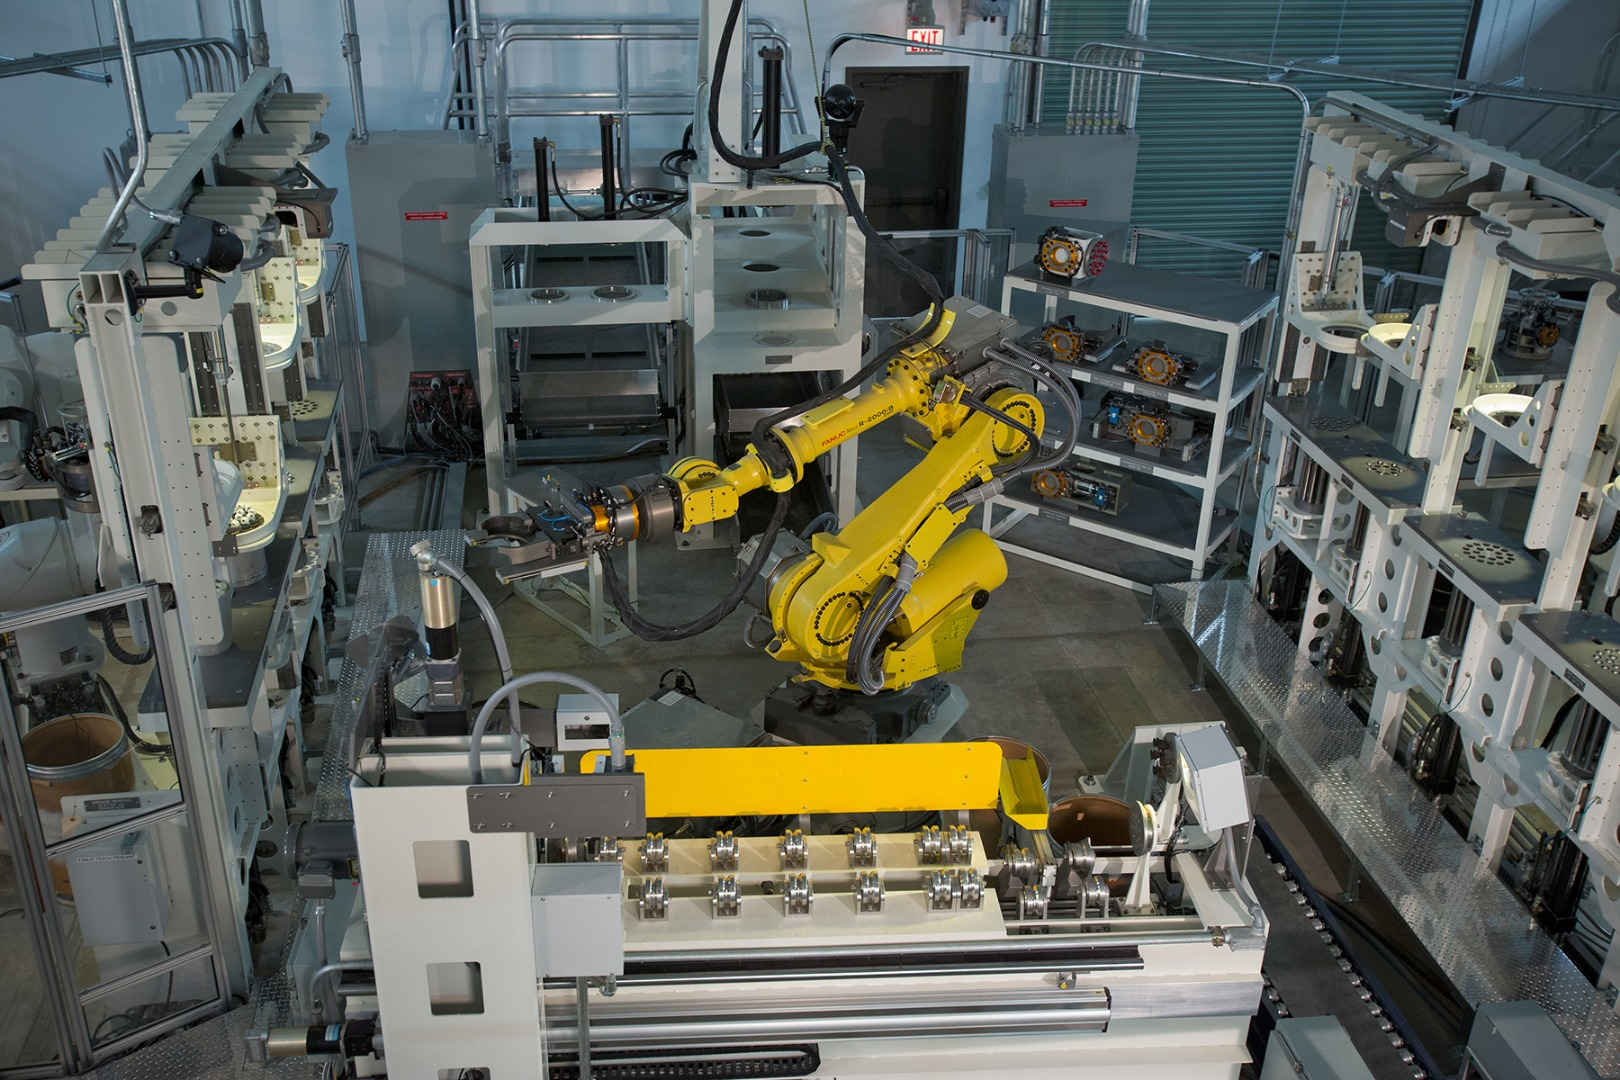 Robots decommission 700,000 munitions for recycling